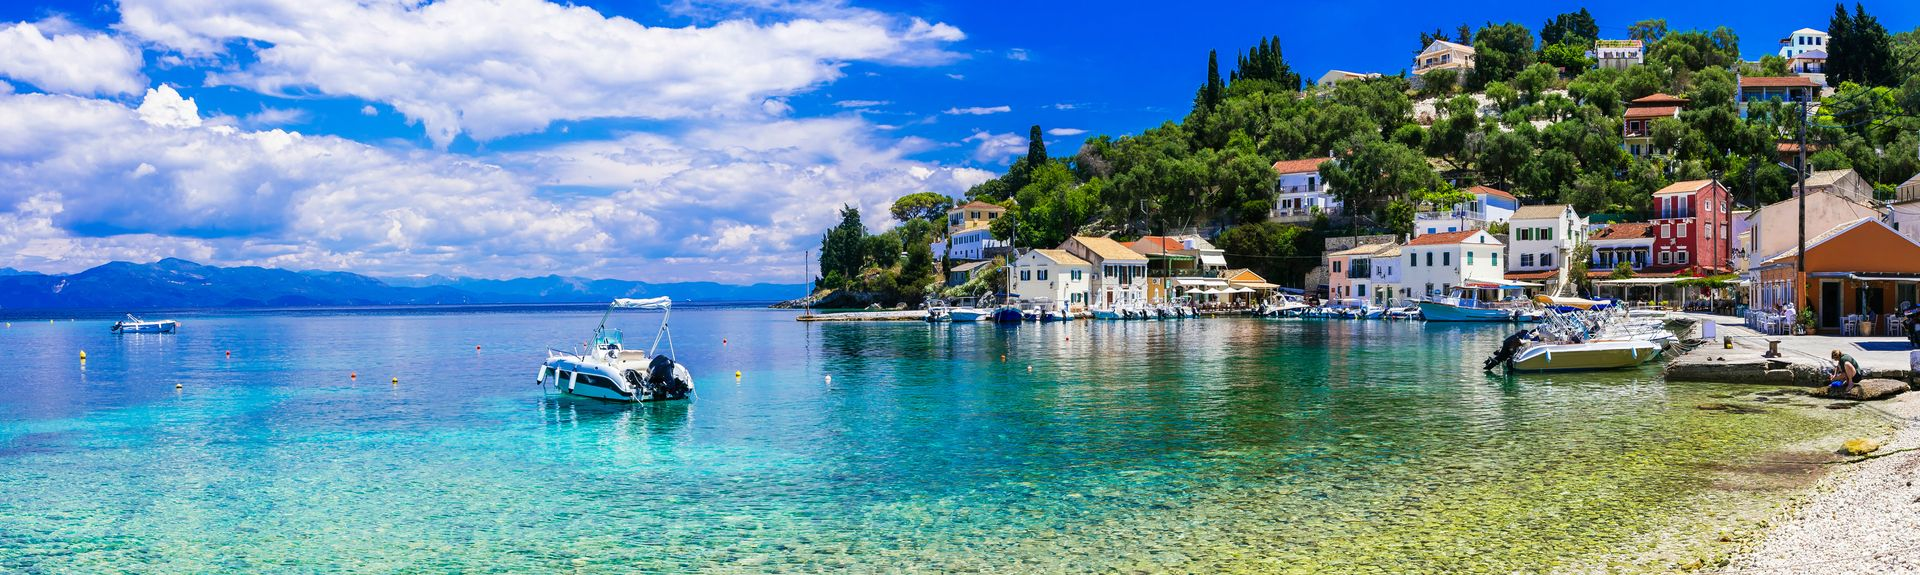 Paxos, Ionian Islands, Greece